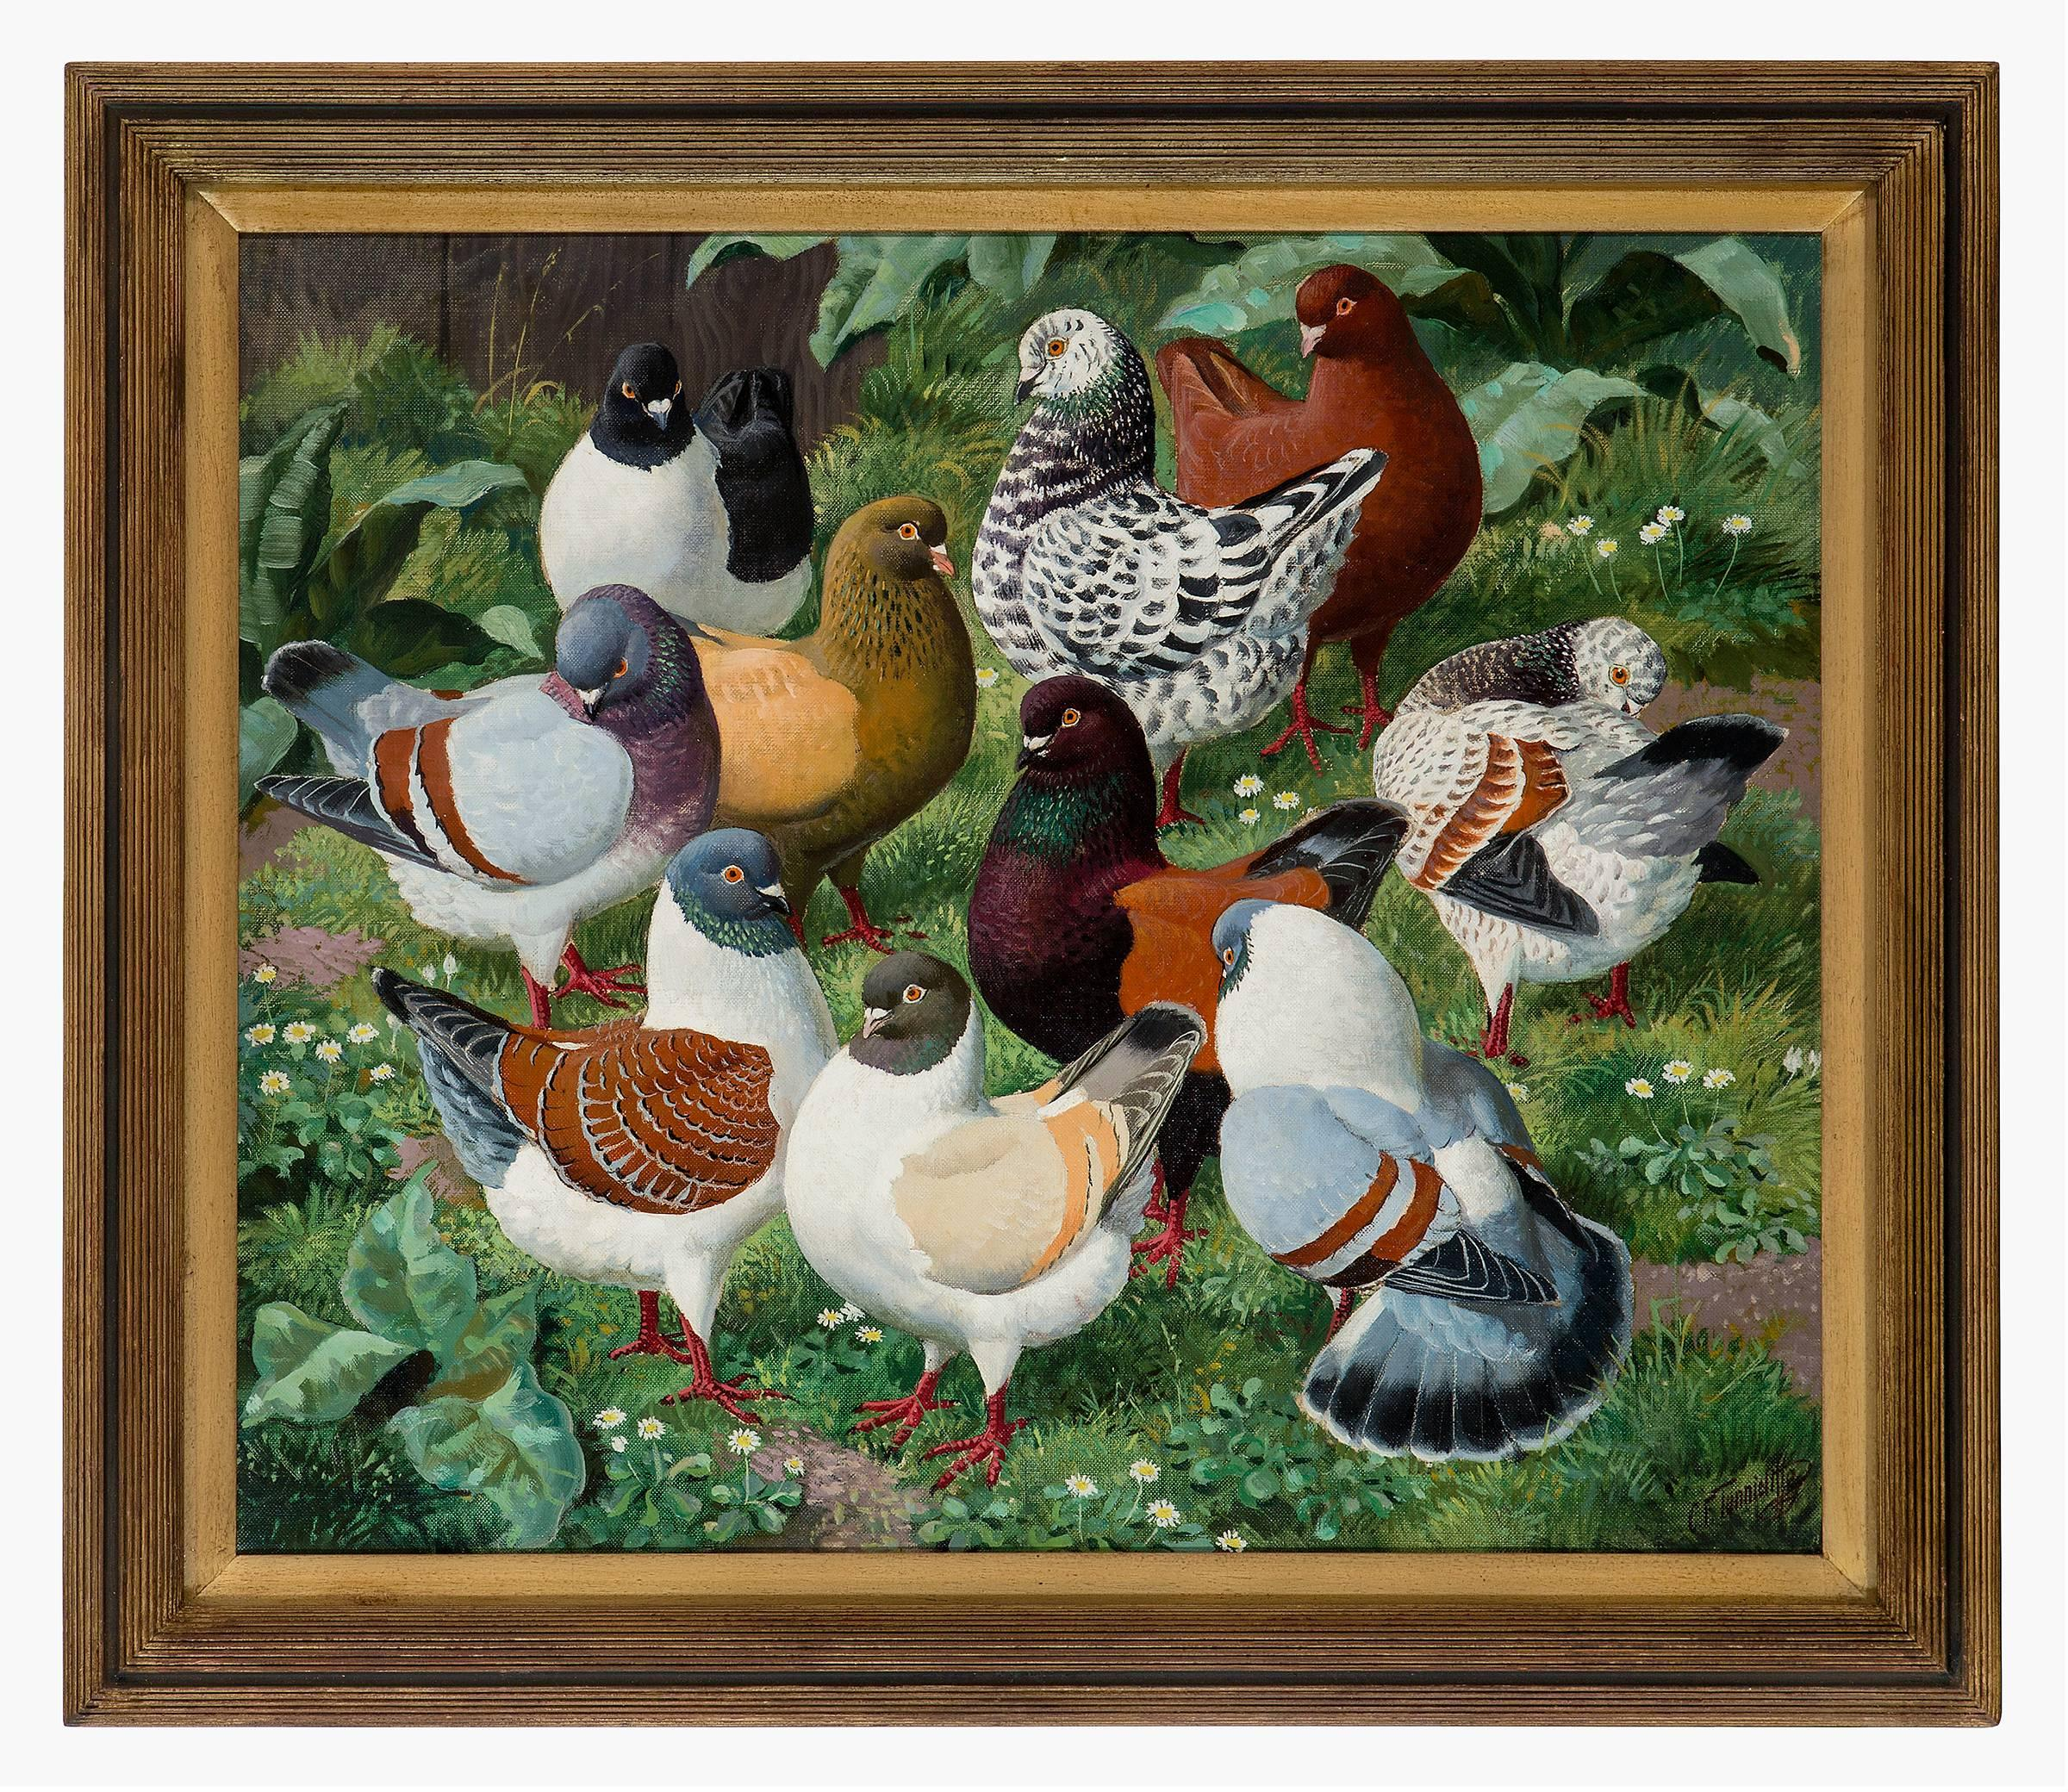 The Fashion Parade - 20 century animal painting by Charles Frederick Tunnicliffe